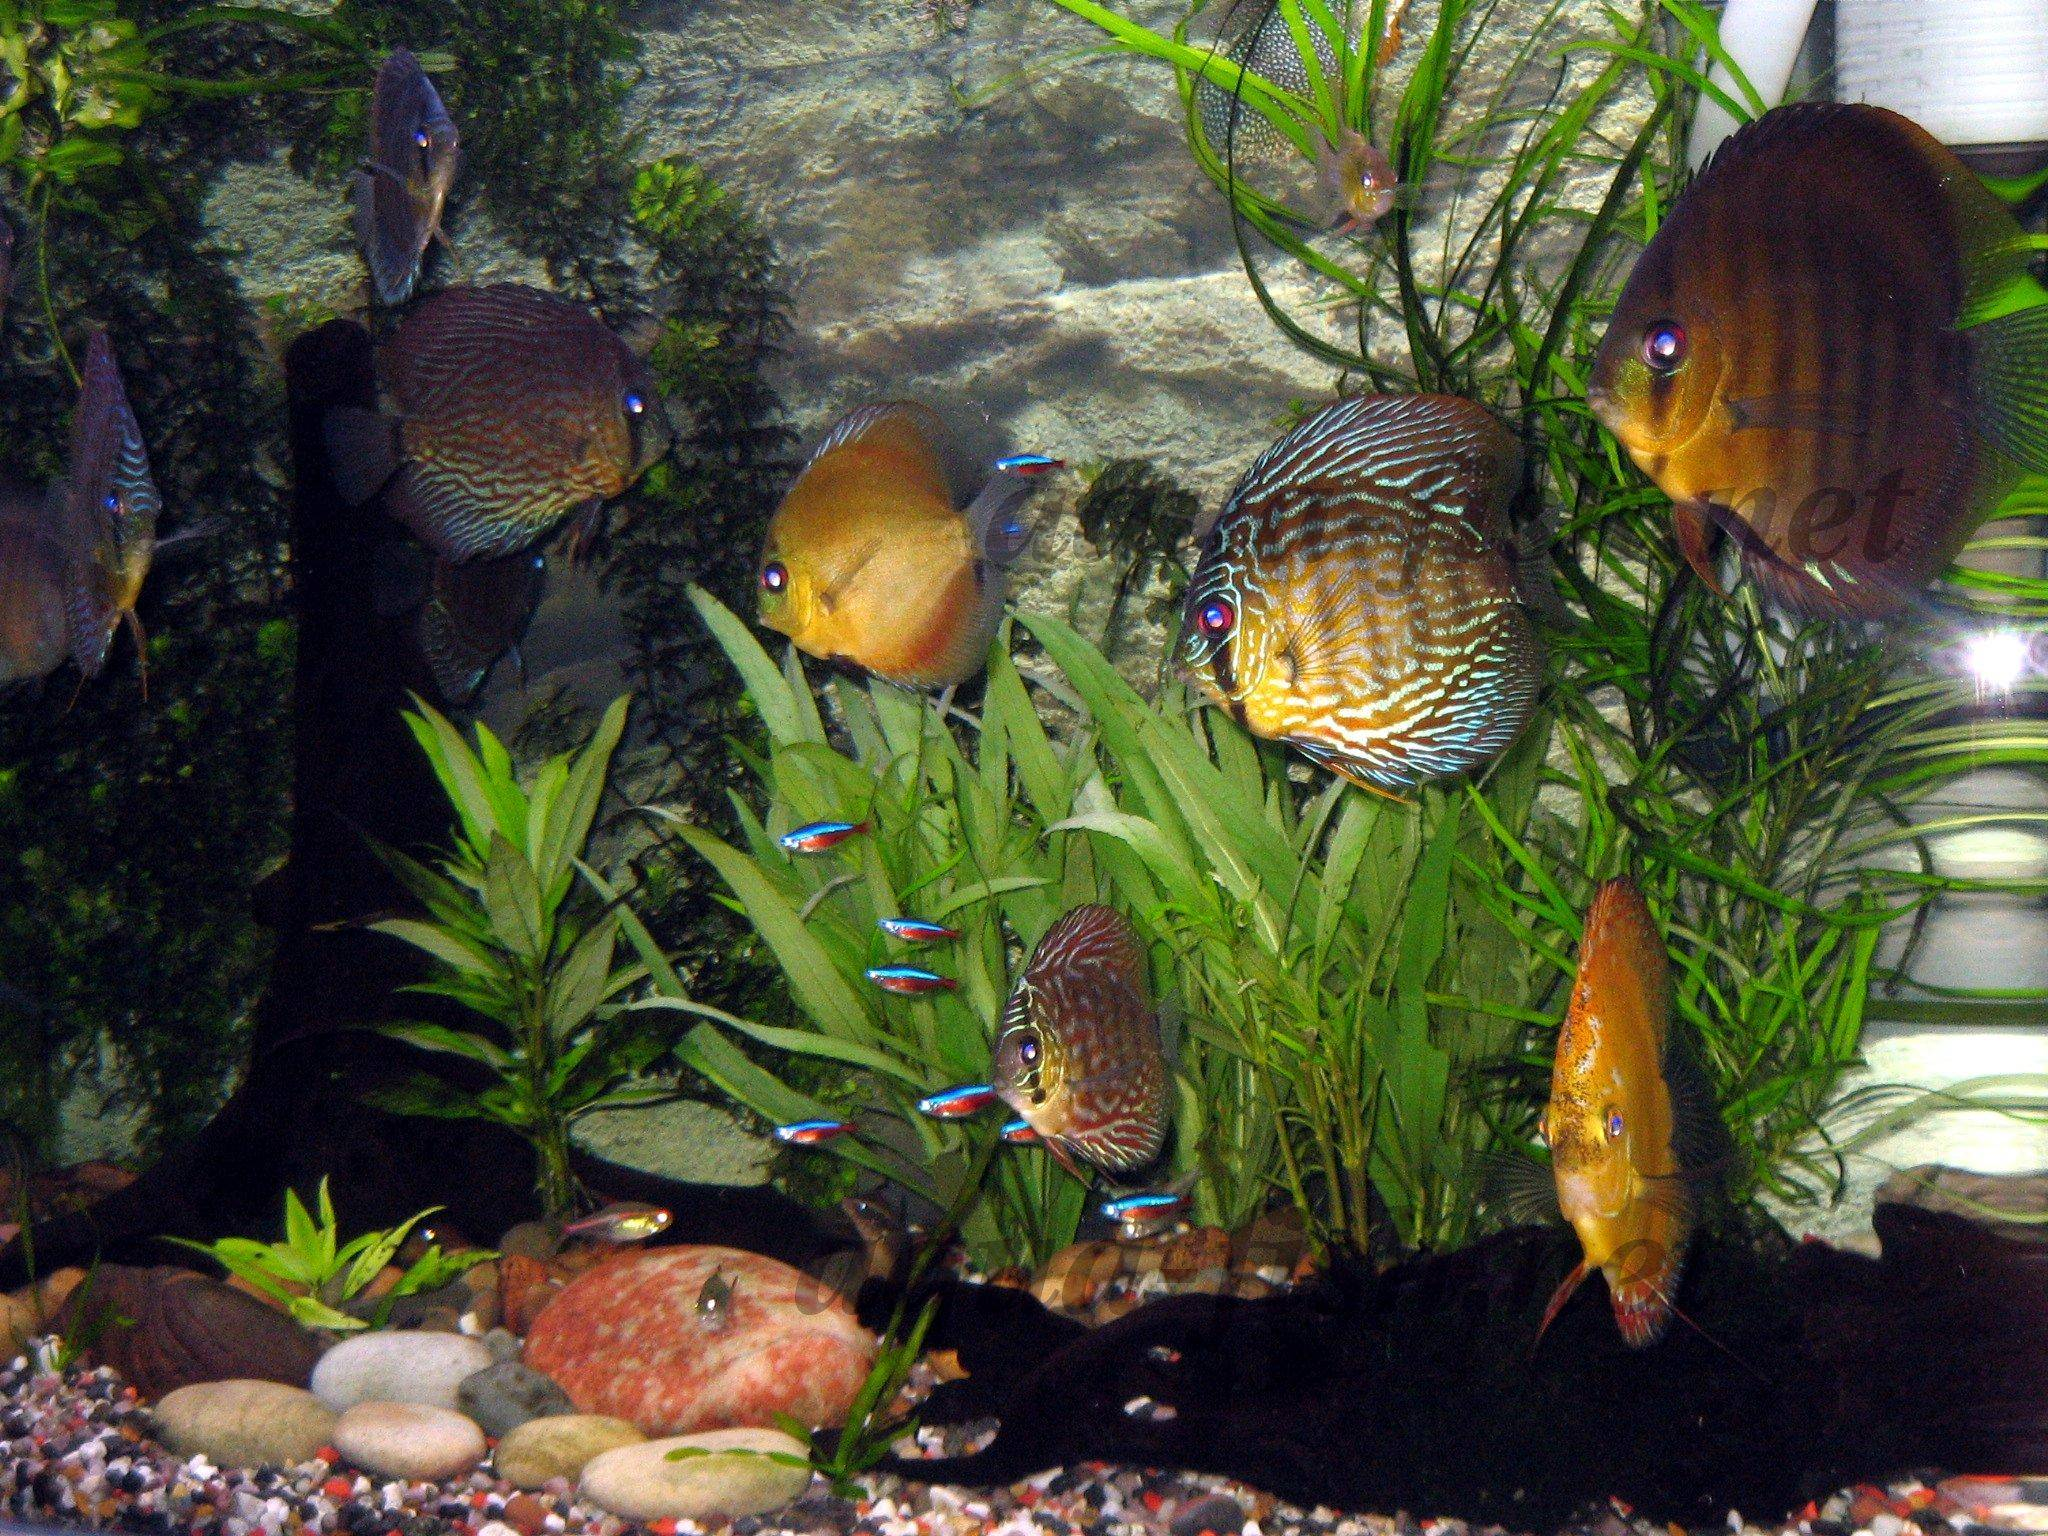 Fish tank Article content